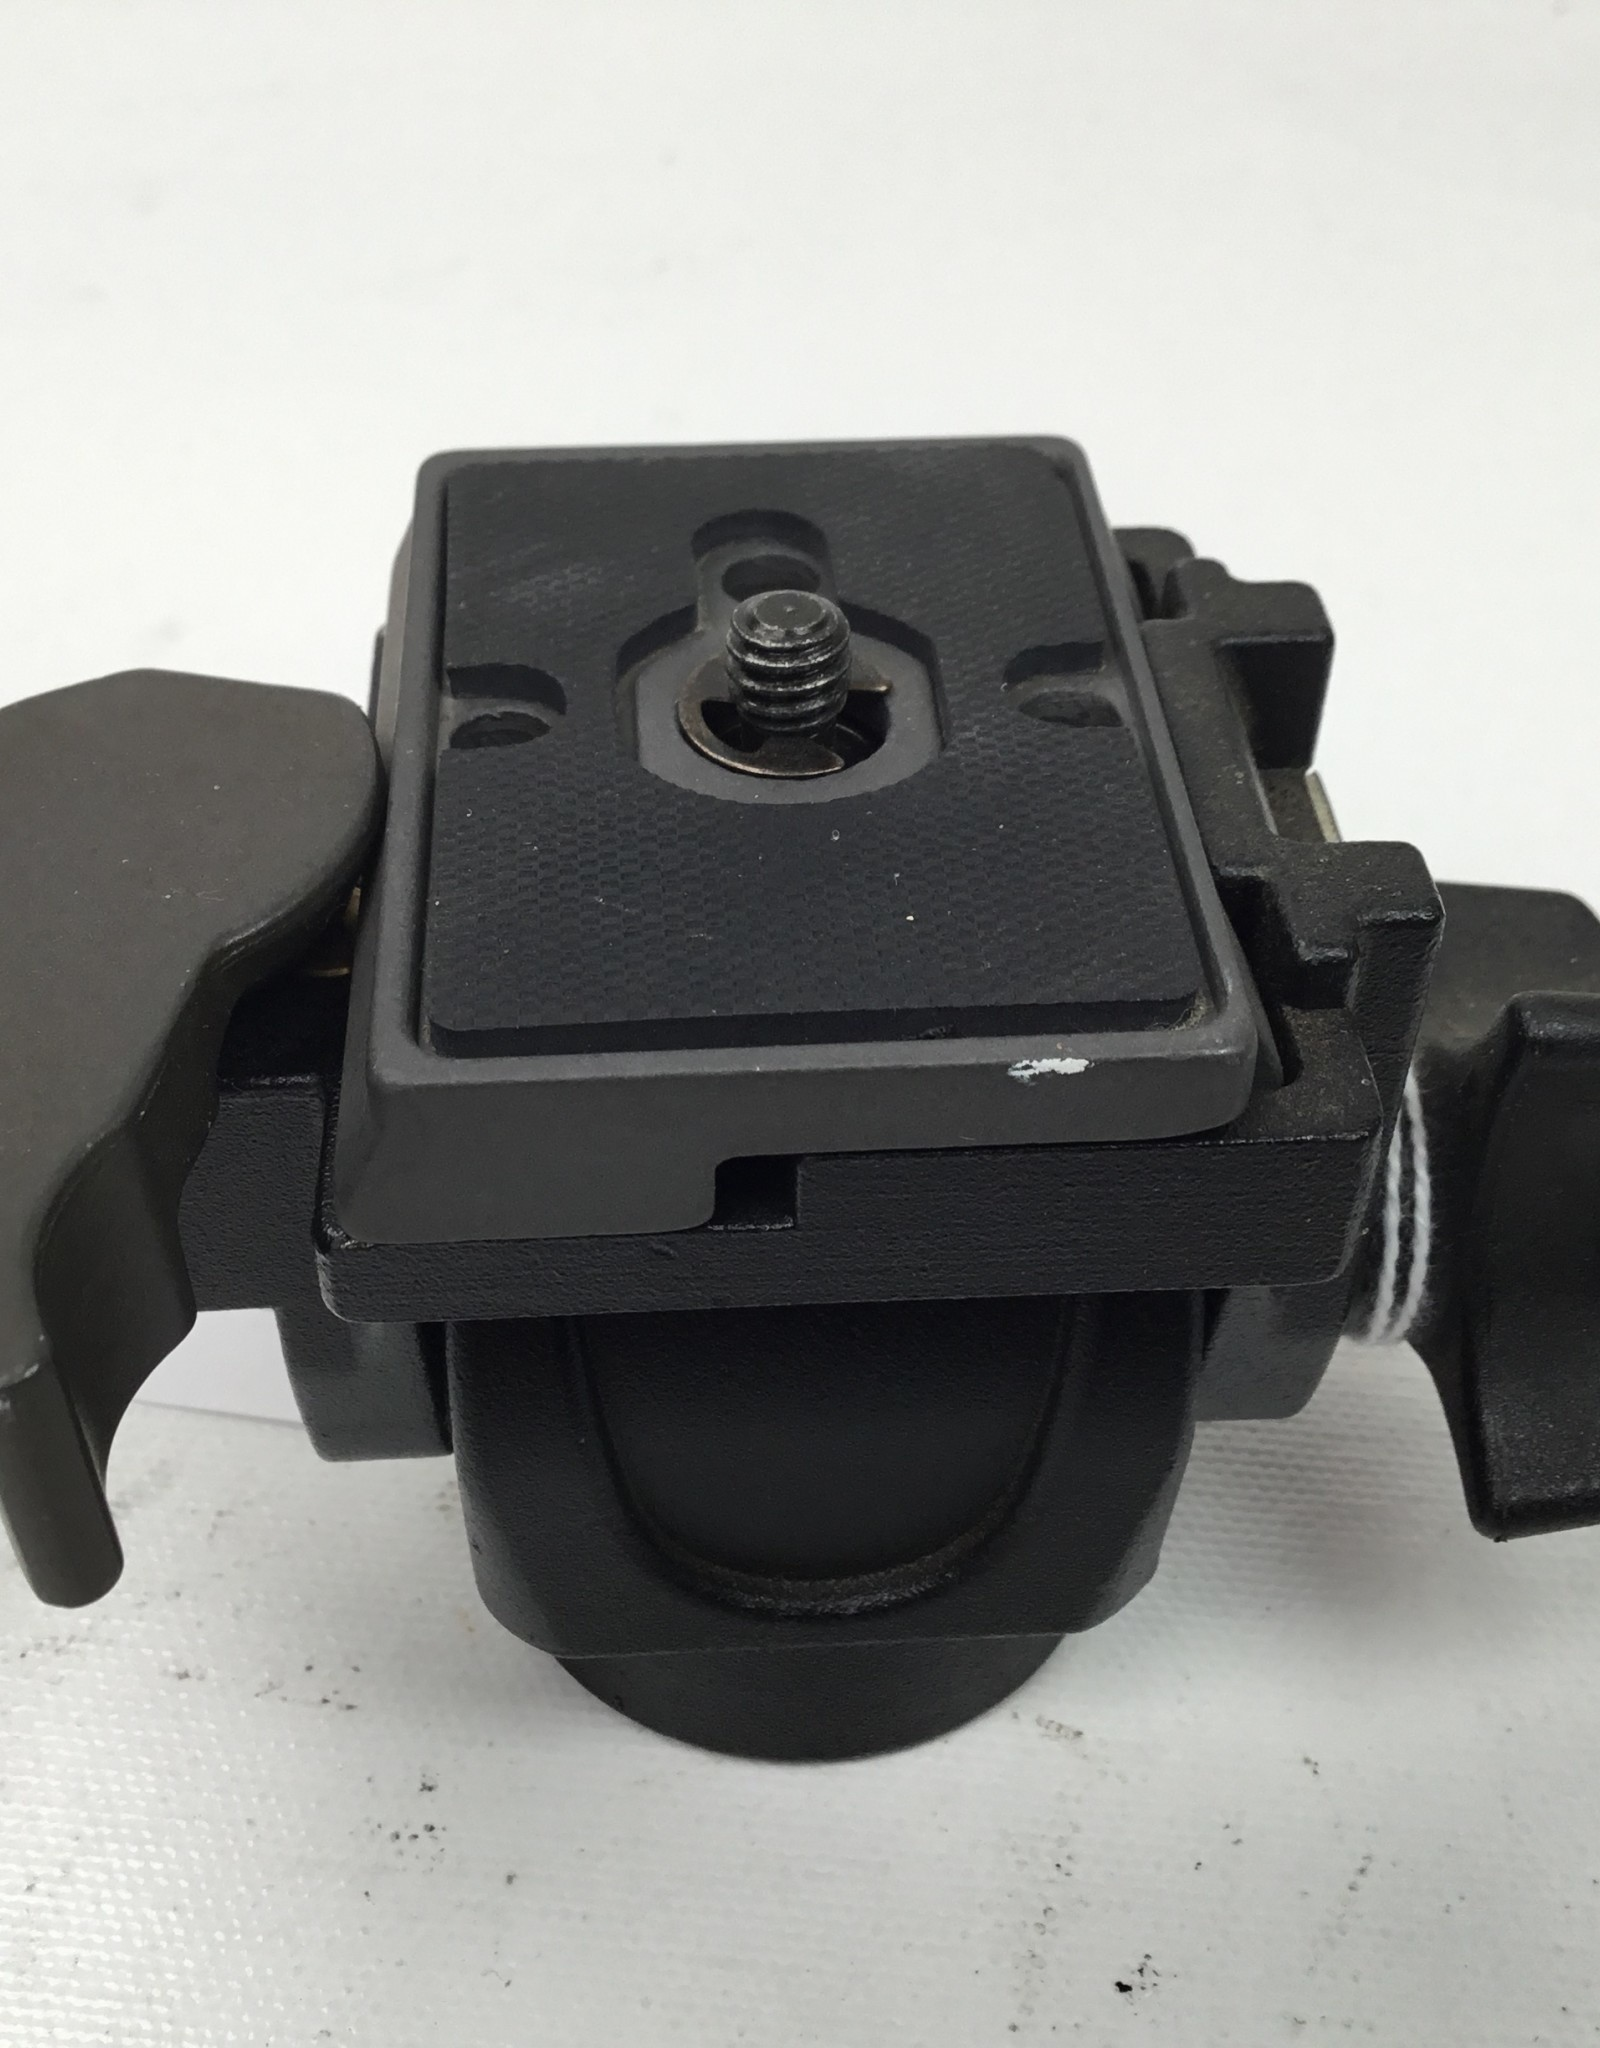 MANFROTTO Manfrotto 3229 Swivel Tilt Monopod Head Used Good